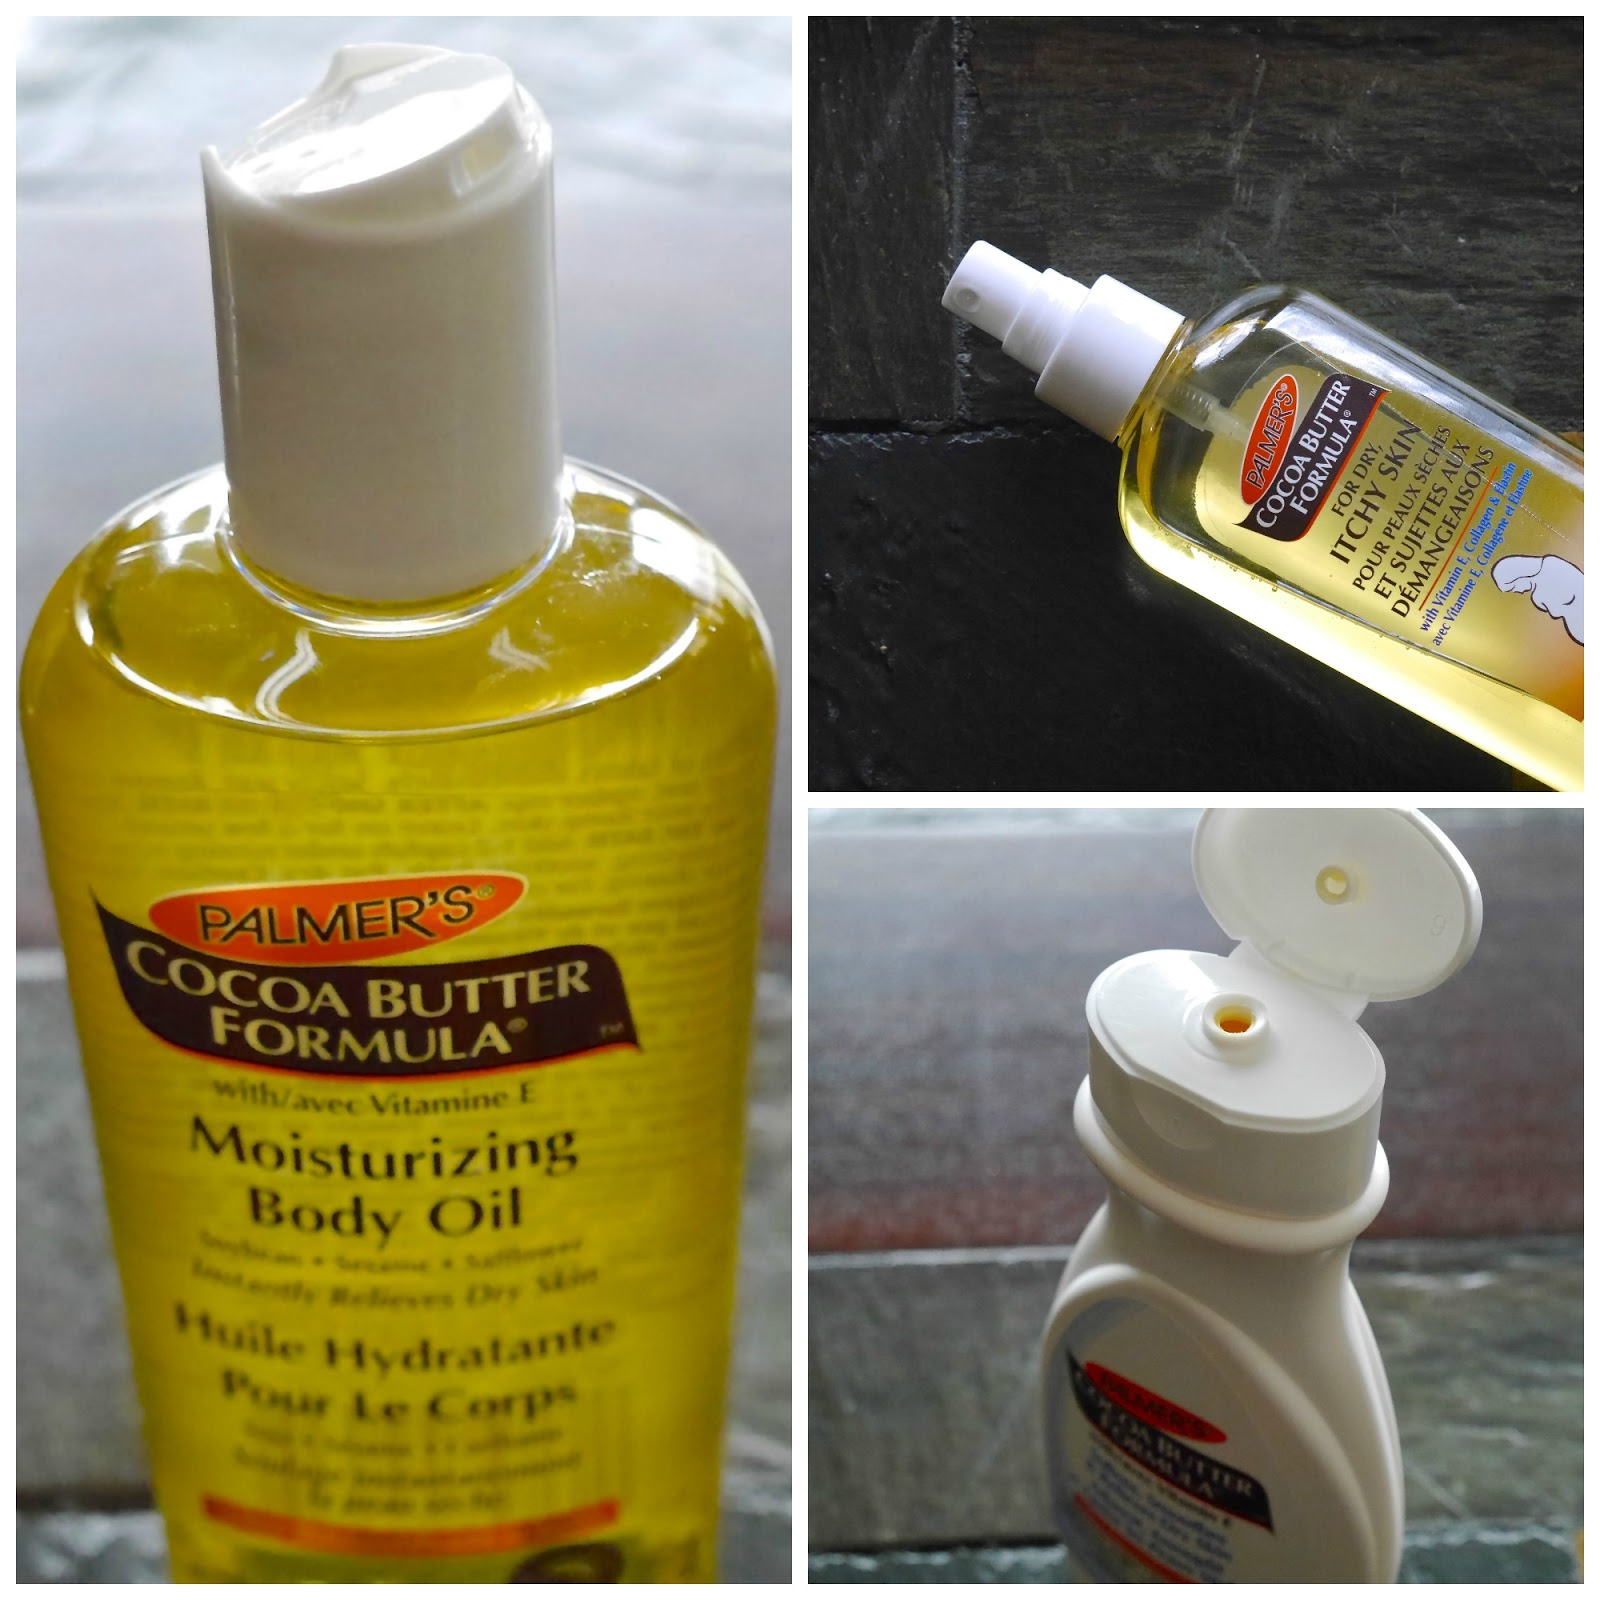 Palmer's Cocoa Butter Formula Soothing Oil for Dry, Itchy Skin*, Moisturizing Body Oil* and Cocoa Butter Lotion*